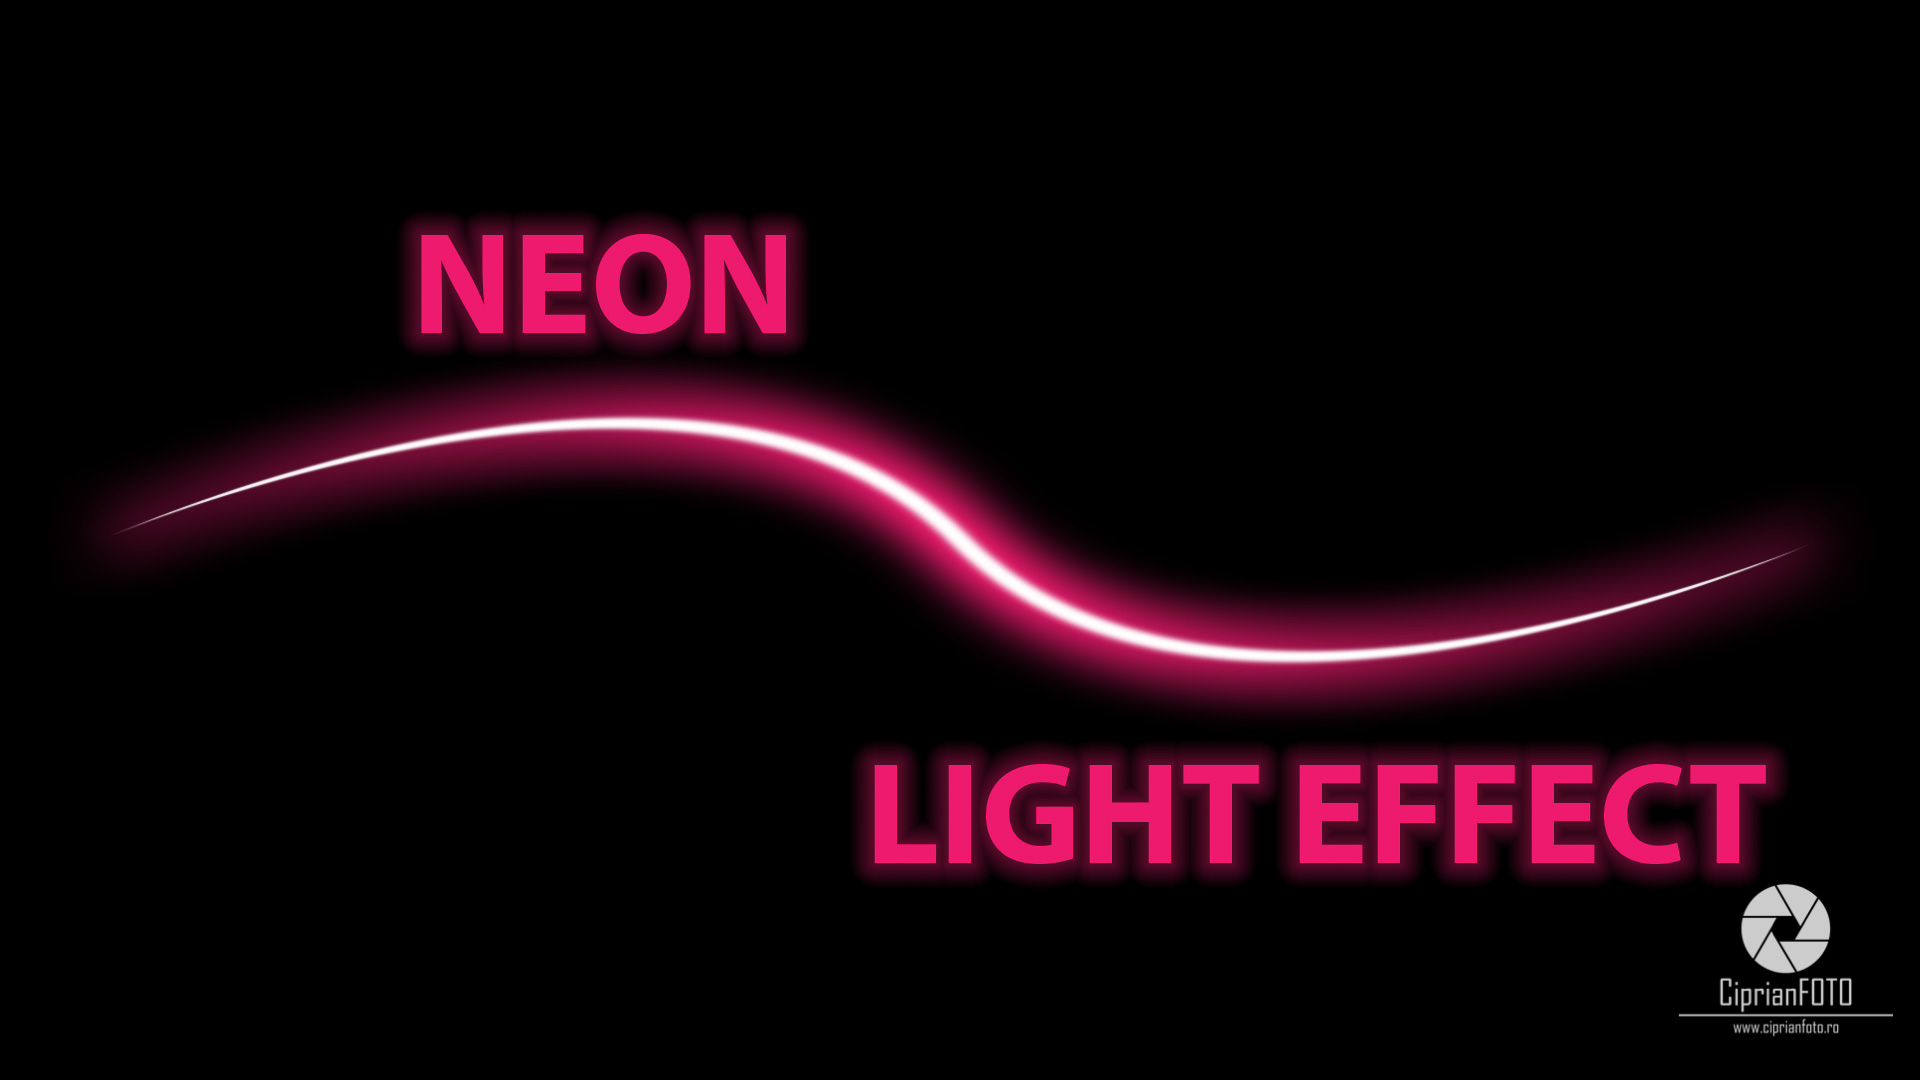 Neon Light Effect In Photoshop CC 2021, Photoshop Tutorial, Neon Light Effect, Photoshop Tutorial Idea, CiprianFOTO, Ciprian FOTO